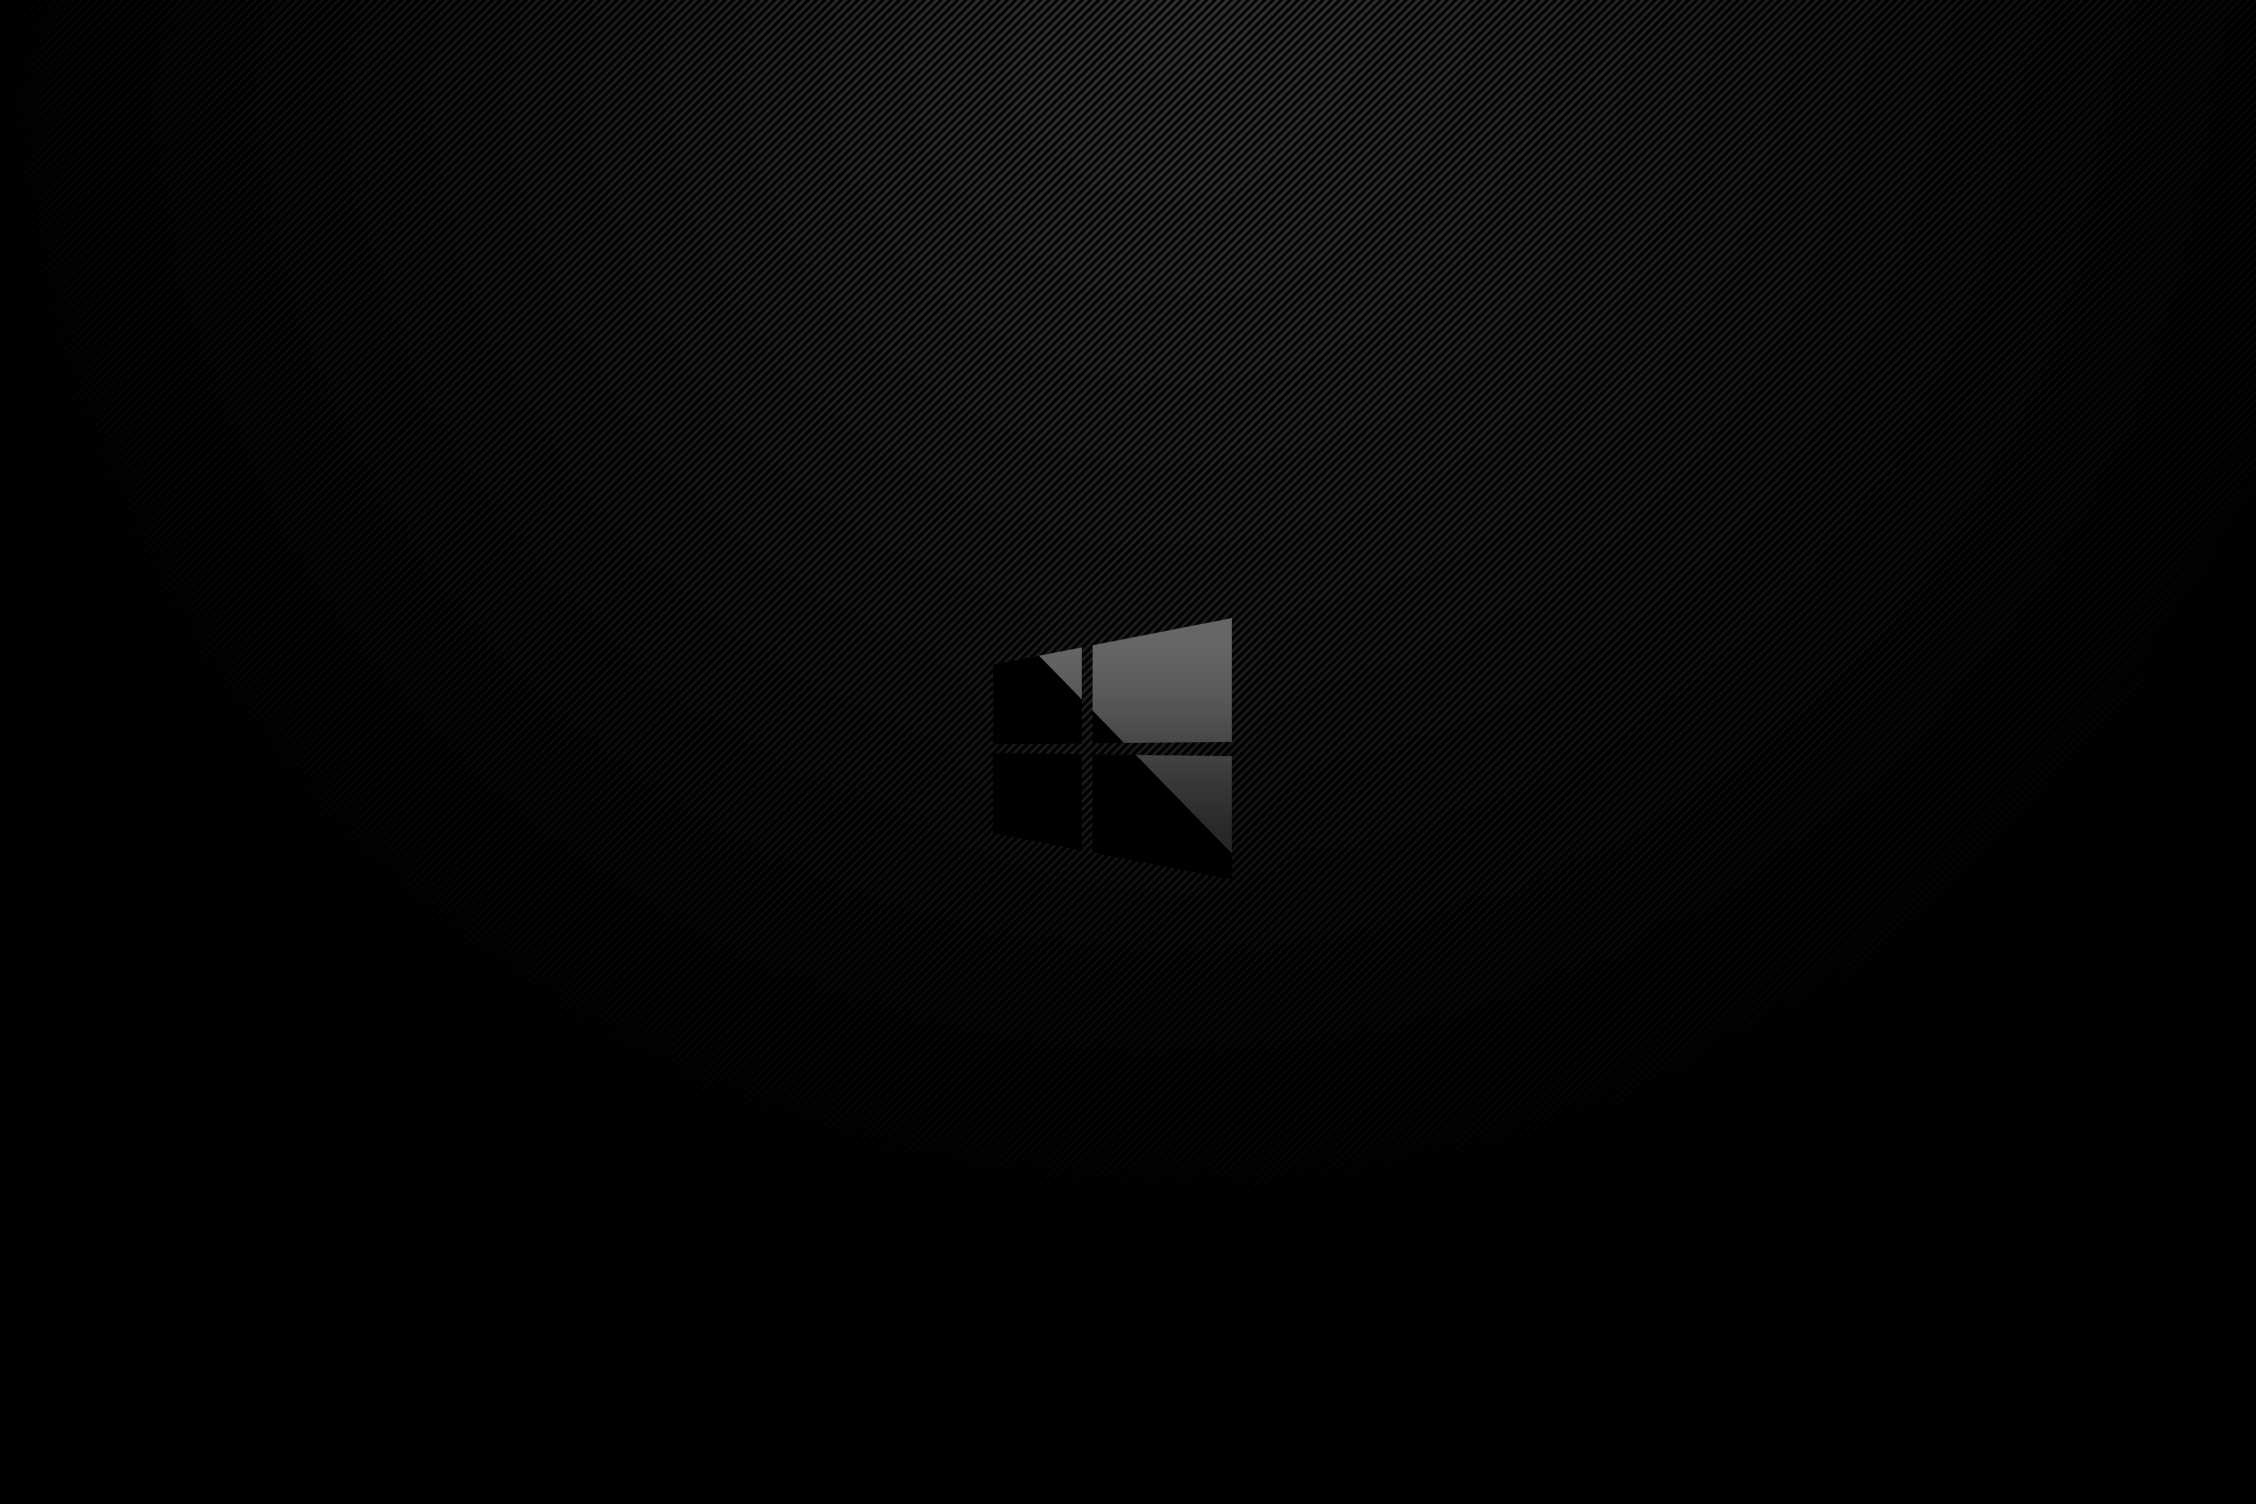 2256x1504 Made a dark minimalist wallpaper for my Surface Laptop. Feel ...